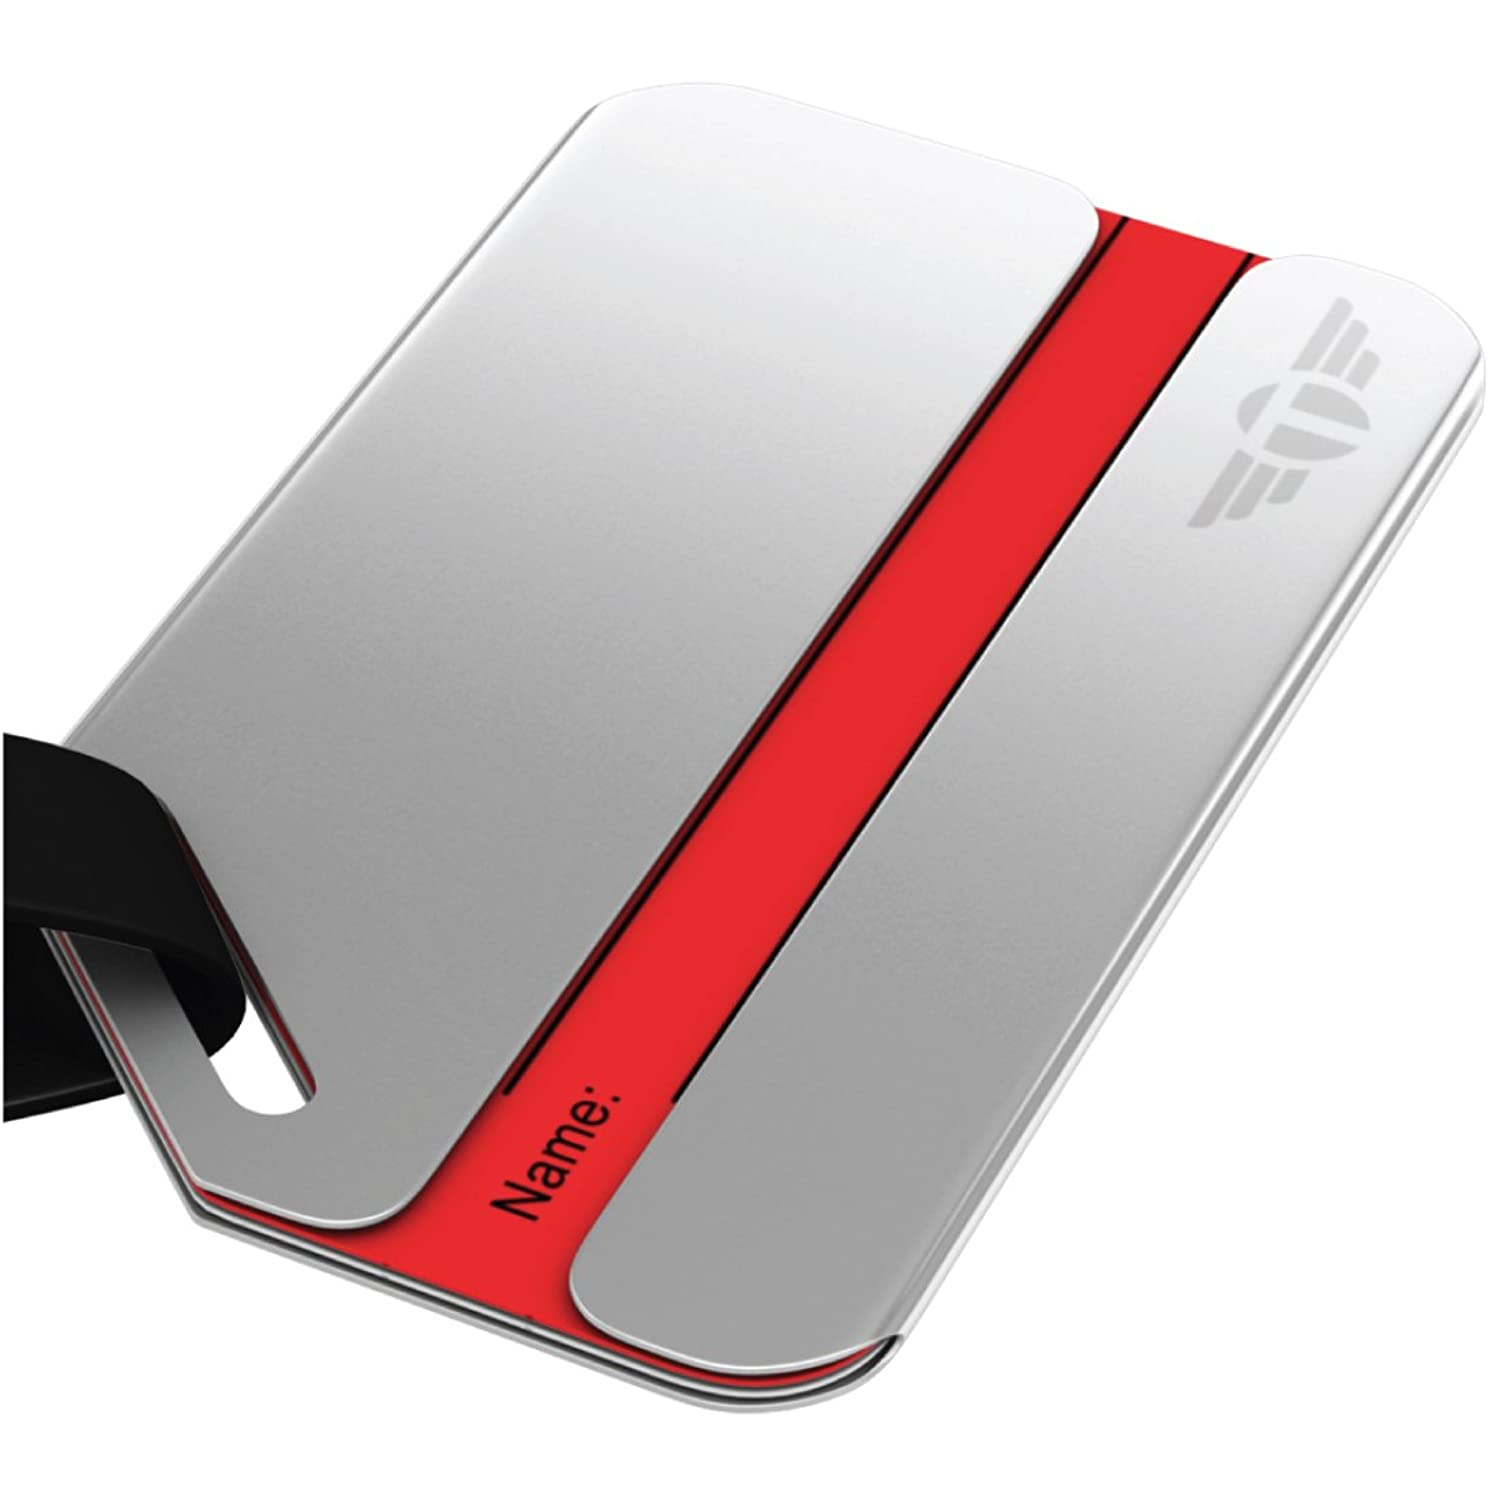 Amazon privacy luggage tag stainless steel metal includes amazon privacy luggage tag stainless steel metal includes lifetime never lost guarantee luggage tags magicingreecefo Choice Image